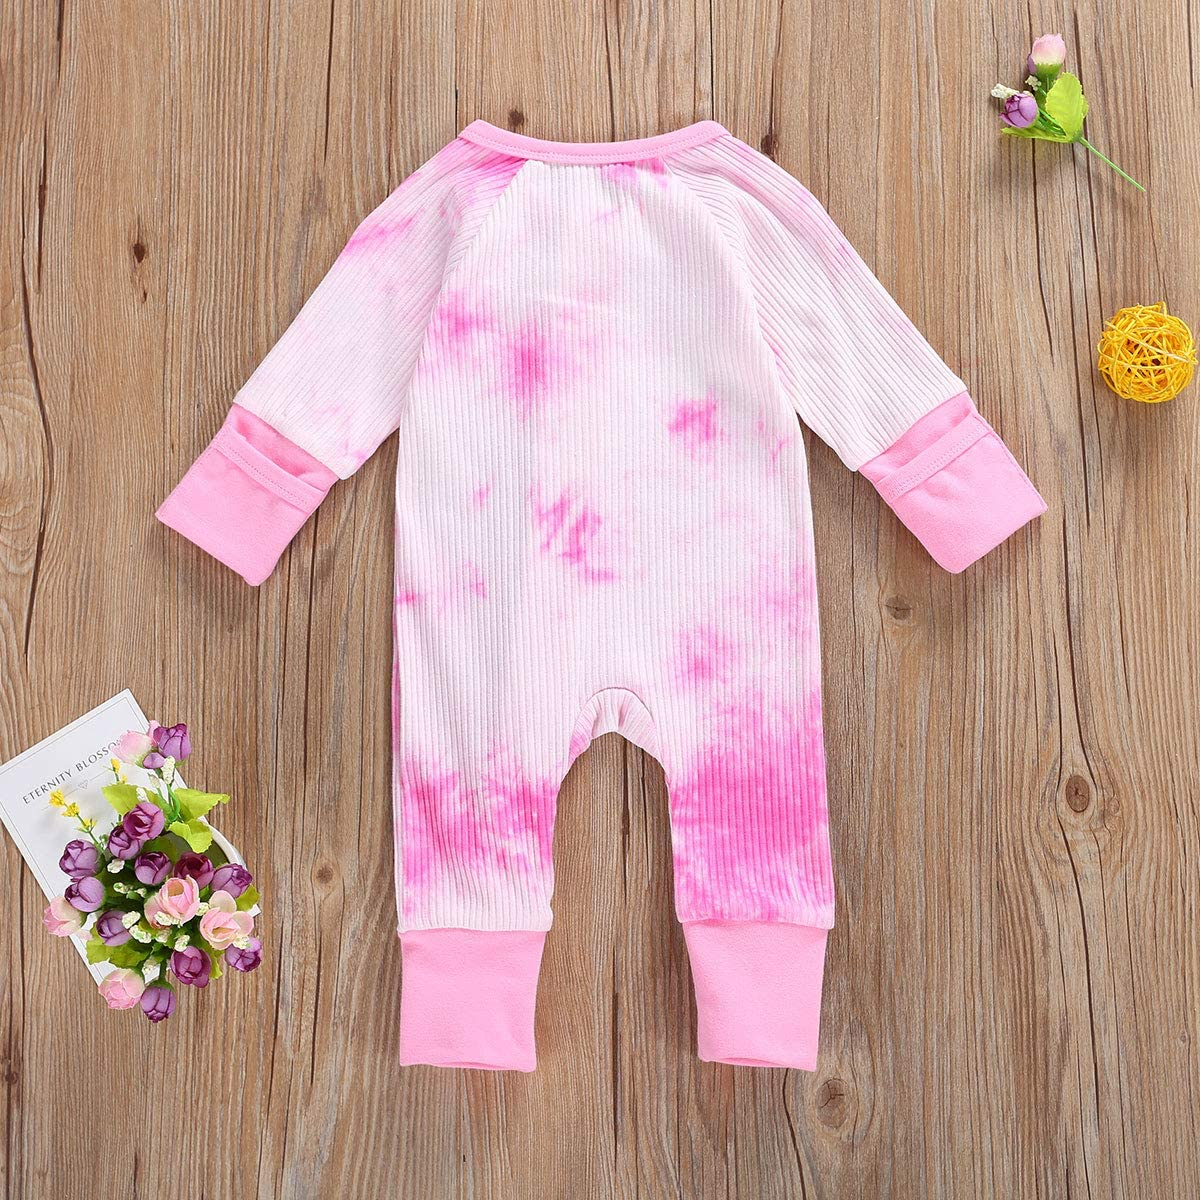 Shejingb Baby Girl Boy Ribbed Romper Jumpsuit Solid Tie Dye Zipper Up Long Sleeve Bodysuit Coverall Fall Outfits